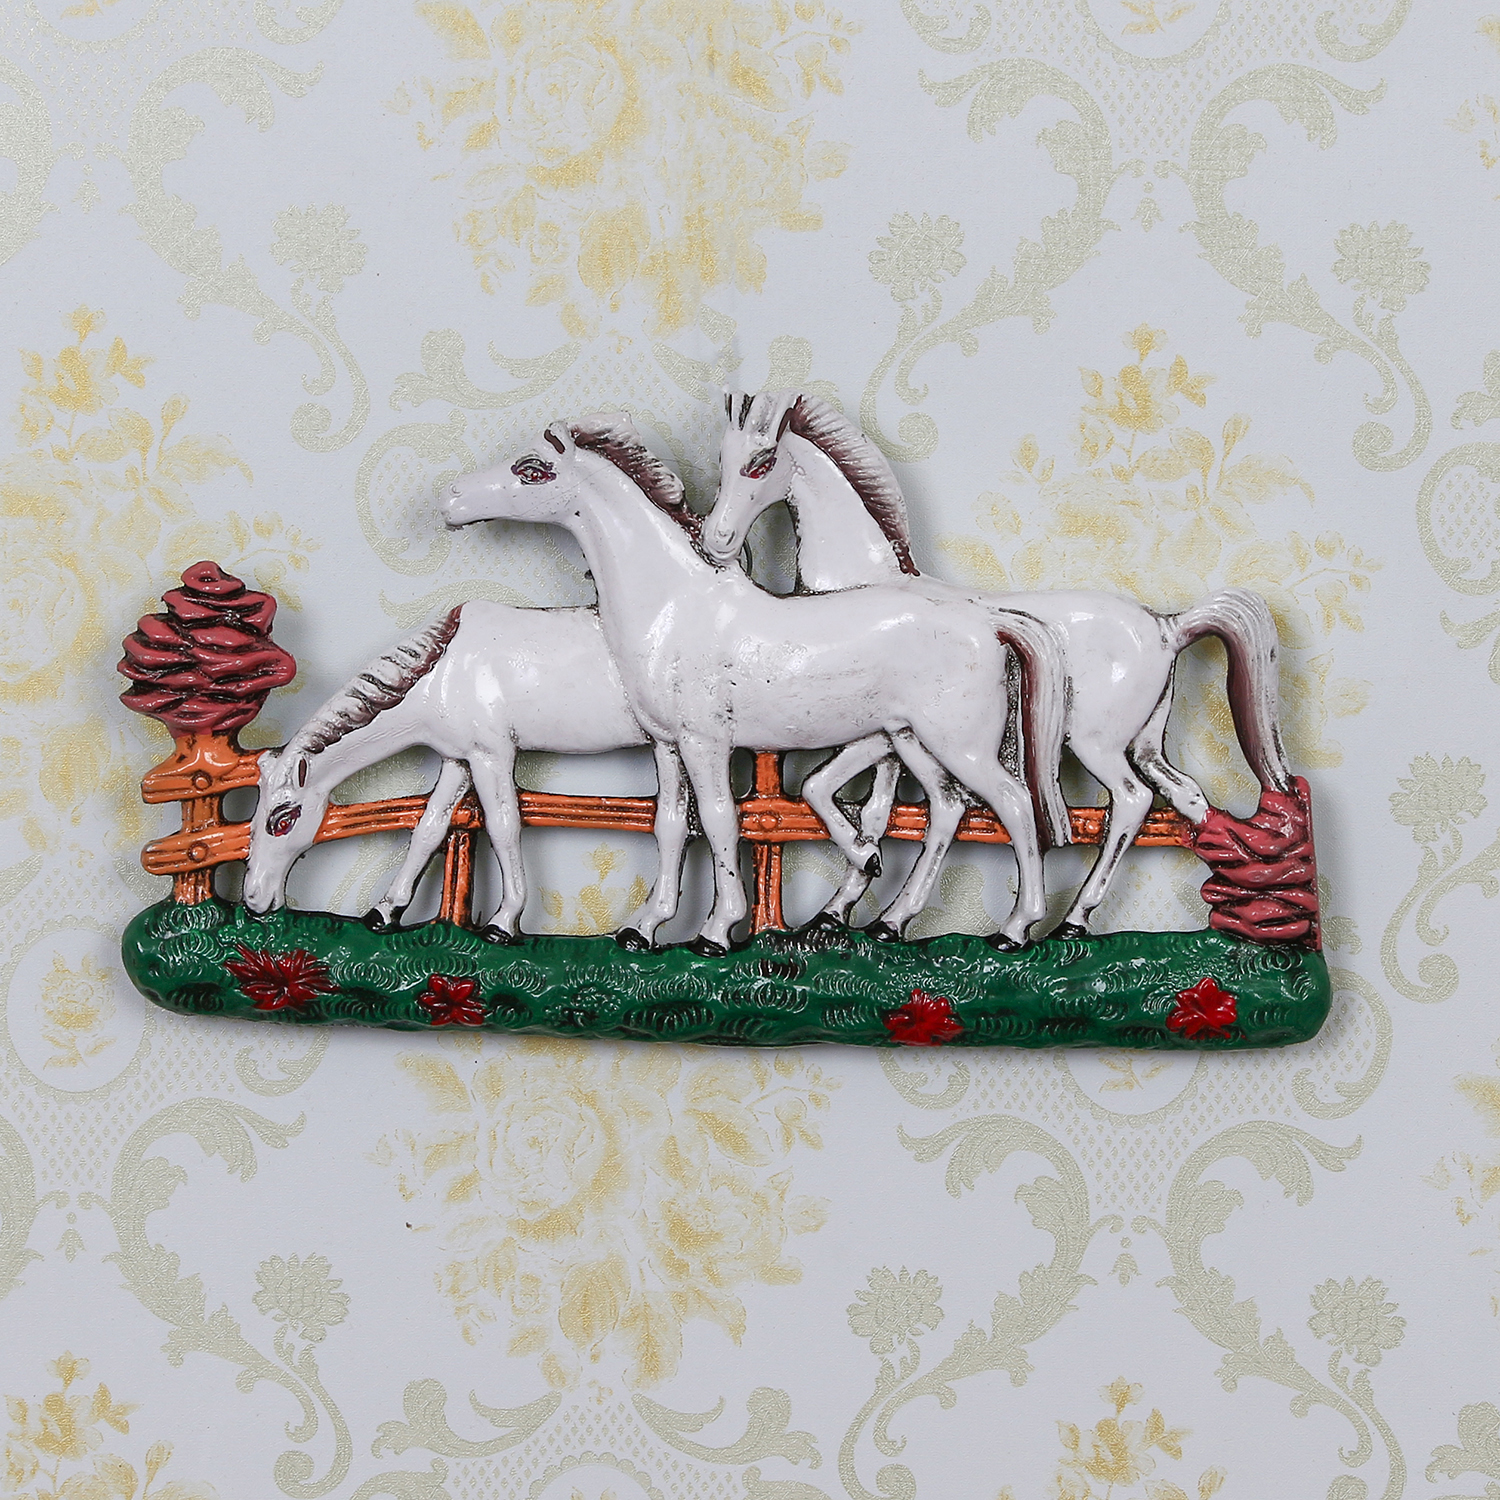 Set of 3 White Horses Decorative Wall Hanging Indian Home Decor